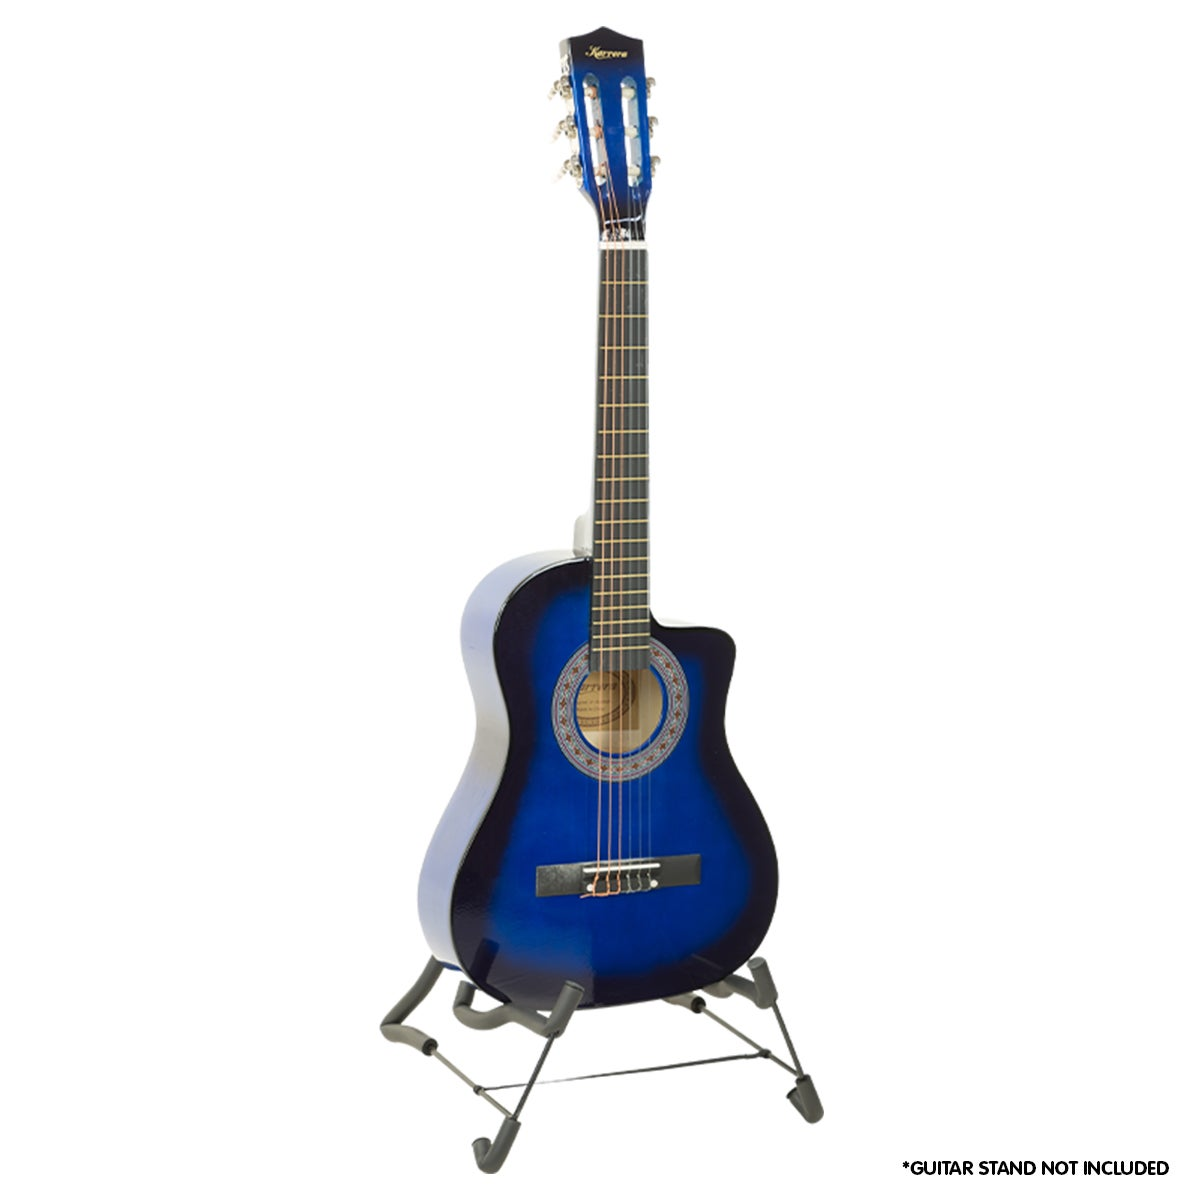 New Blue Childrens Acoustic Guitar Ideal Kids Gift 1/2 Size